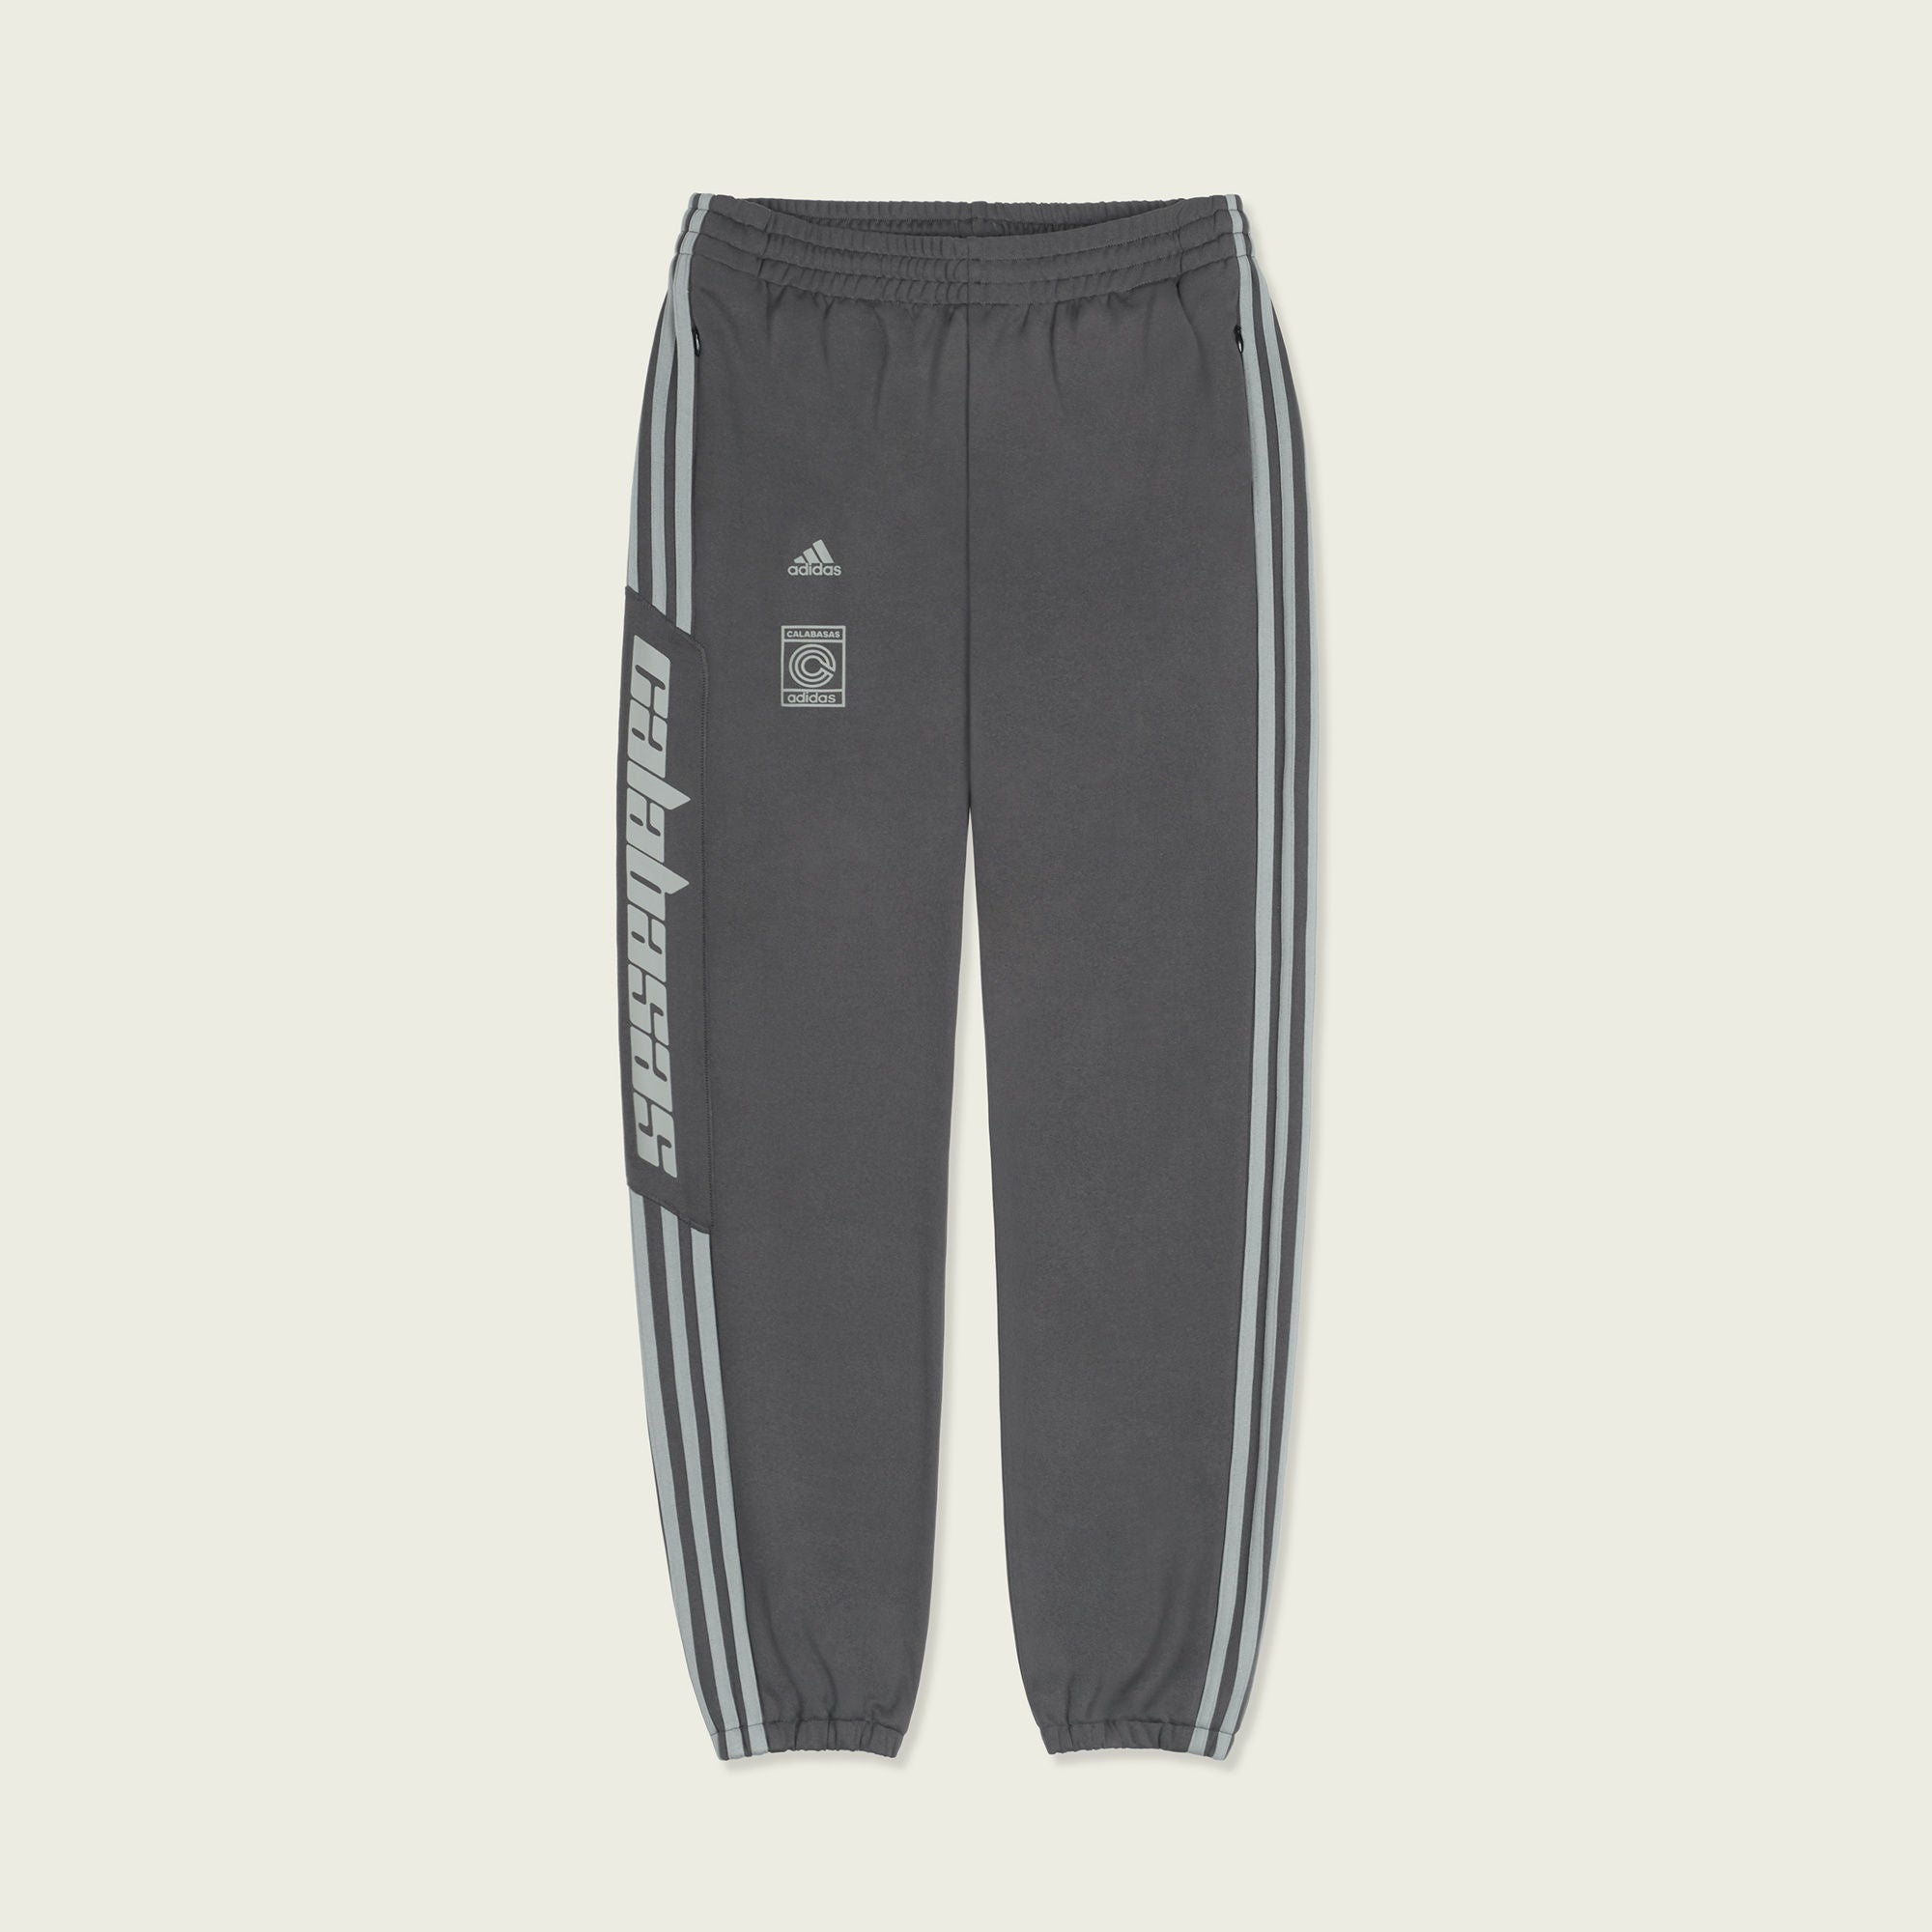 YEEZY CALABASAS TRACK PANT - INK / WOLVES